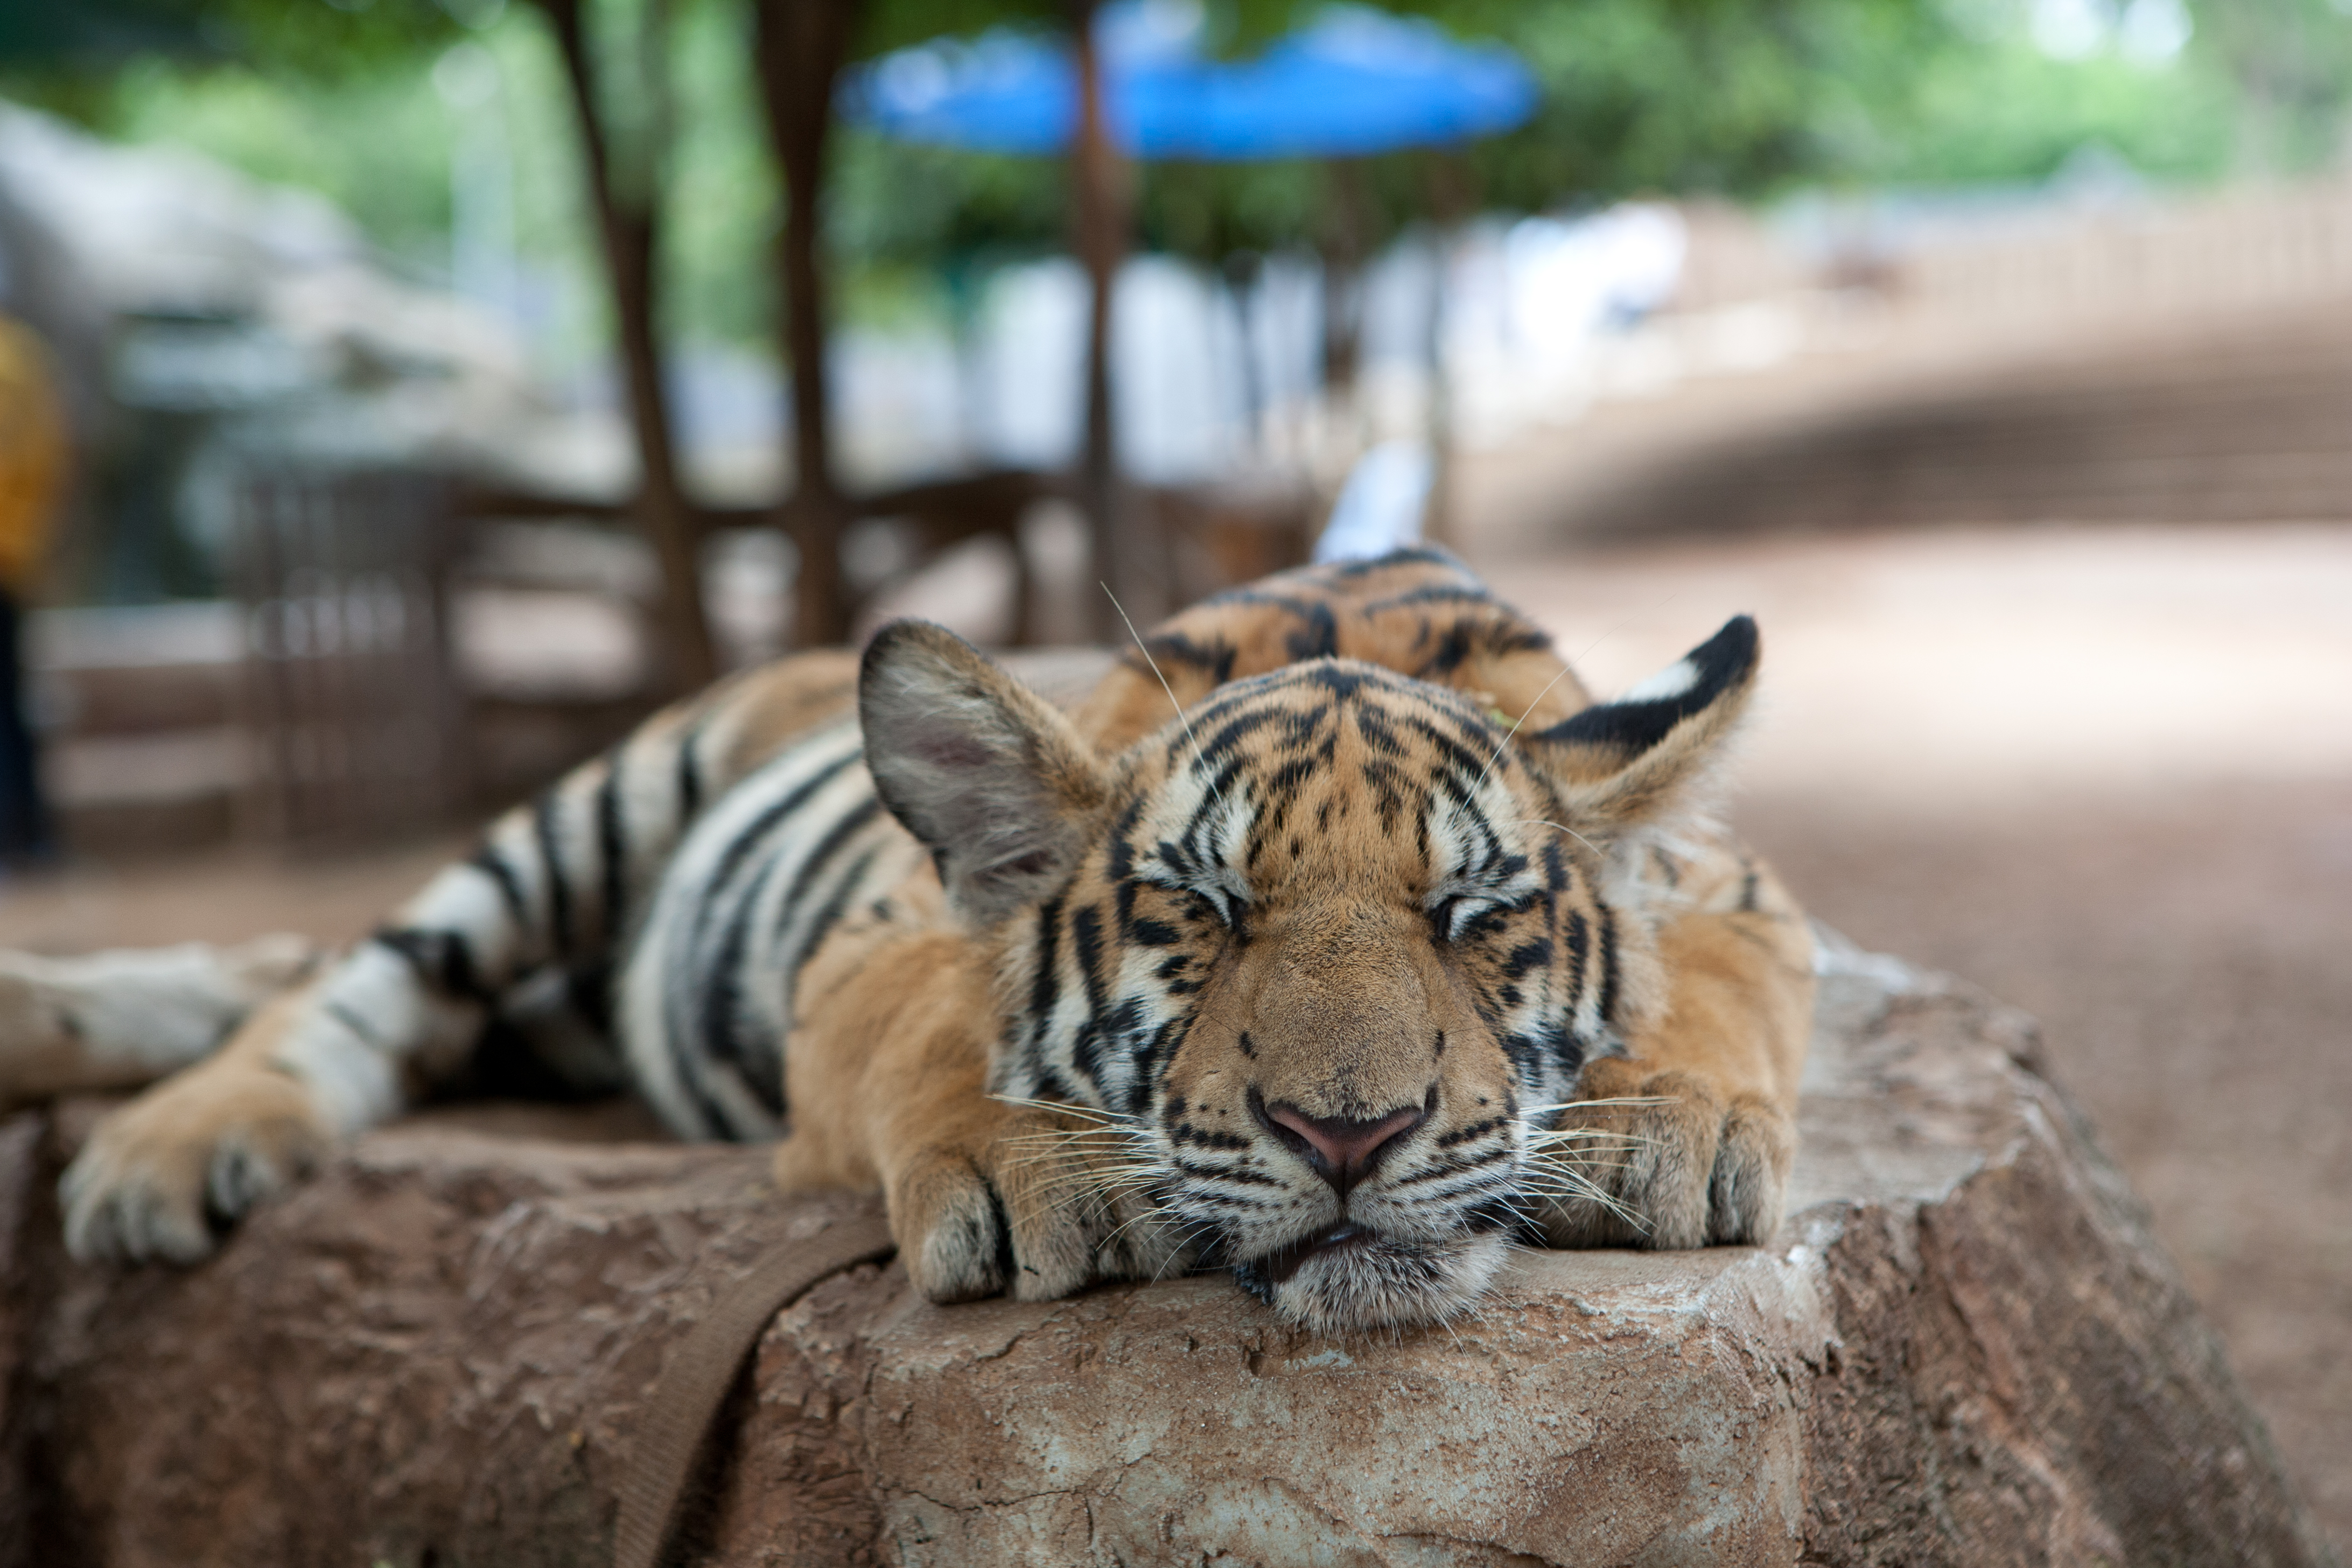 Time to drop the Tiger Temple from the bucket list